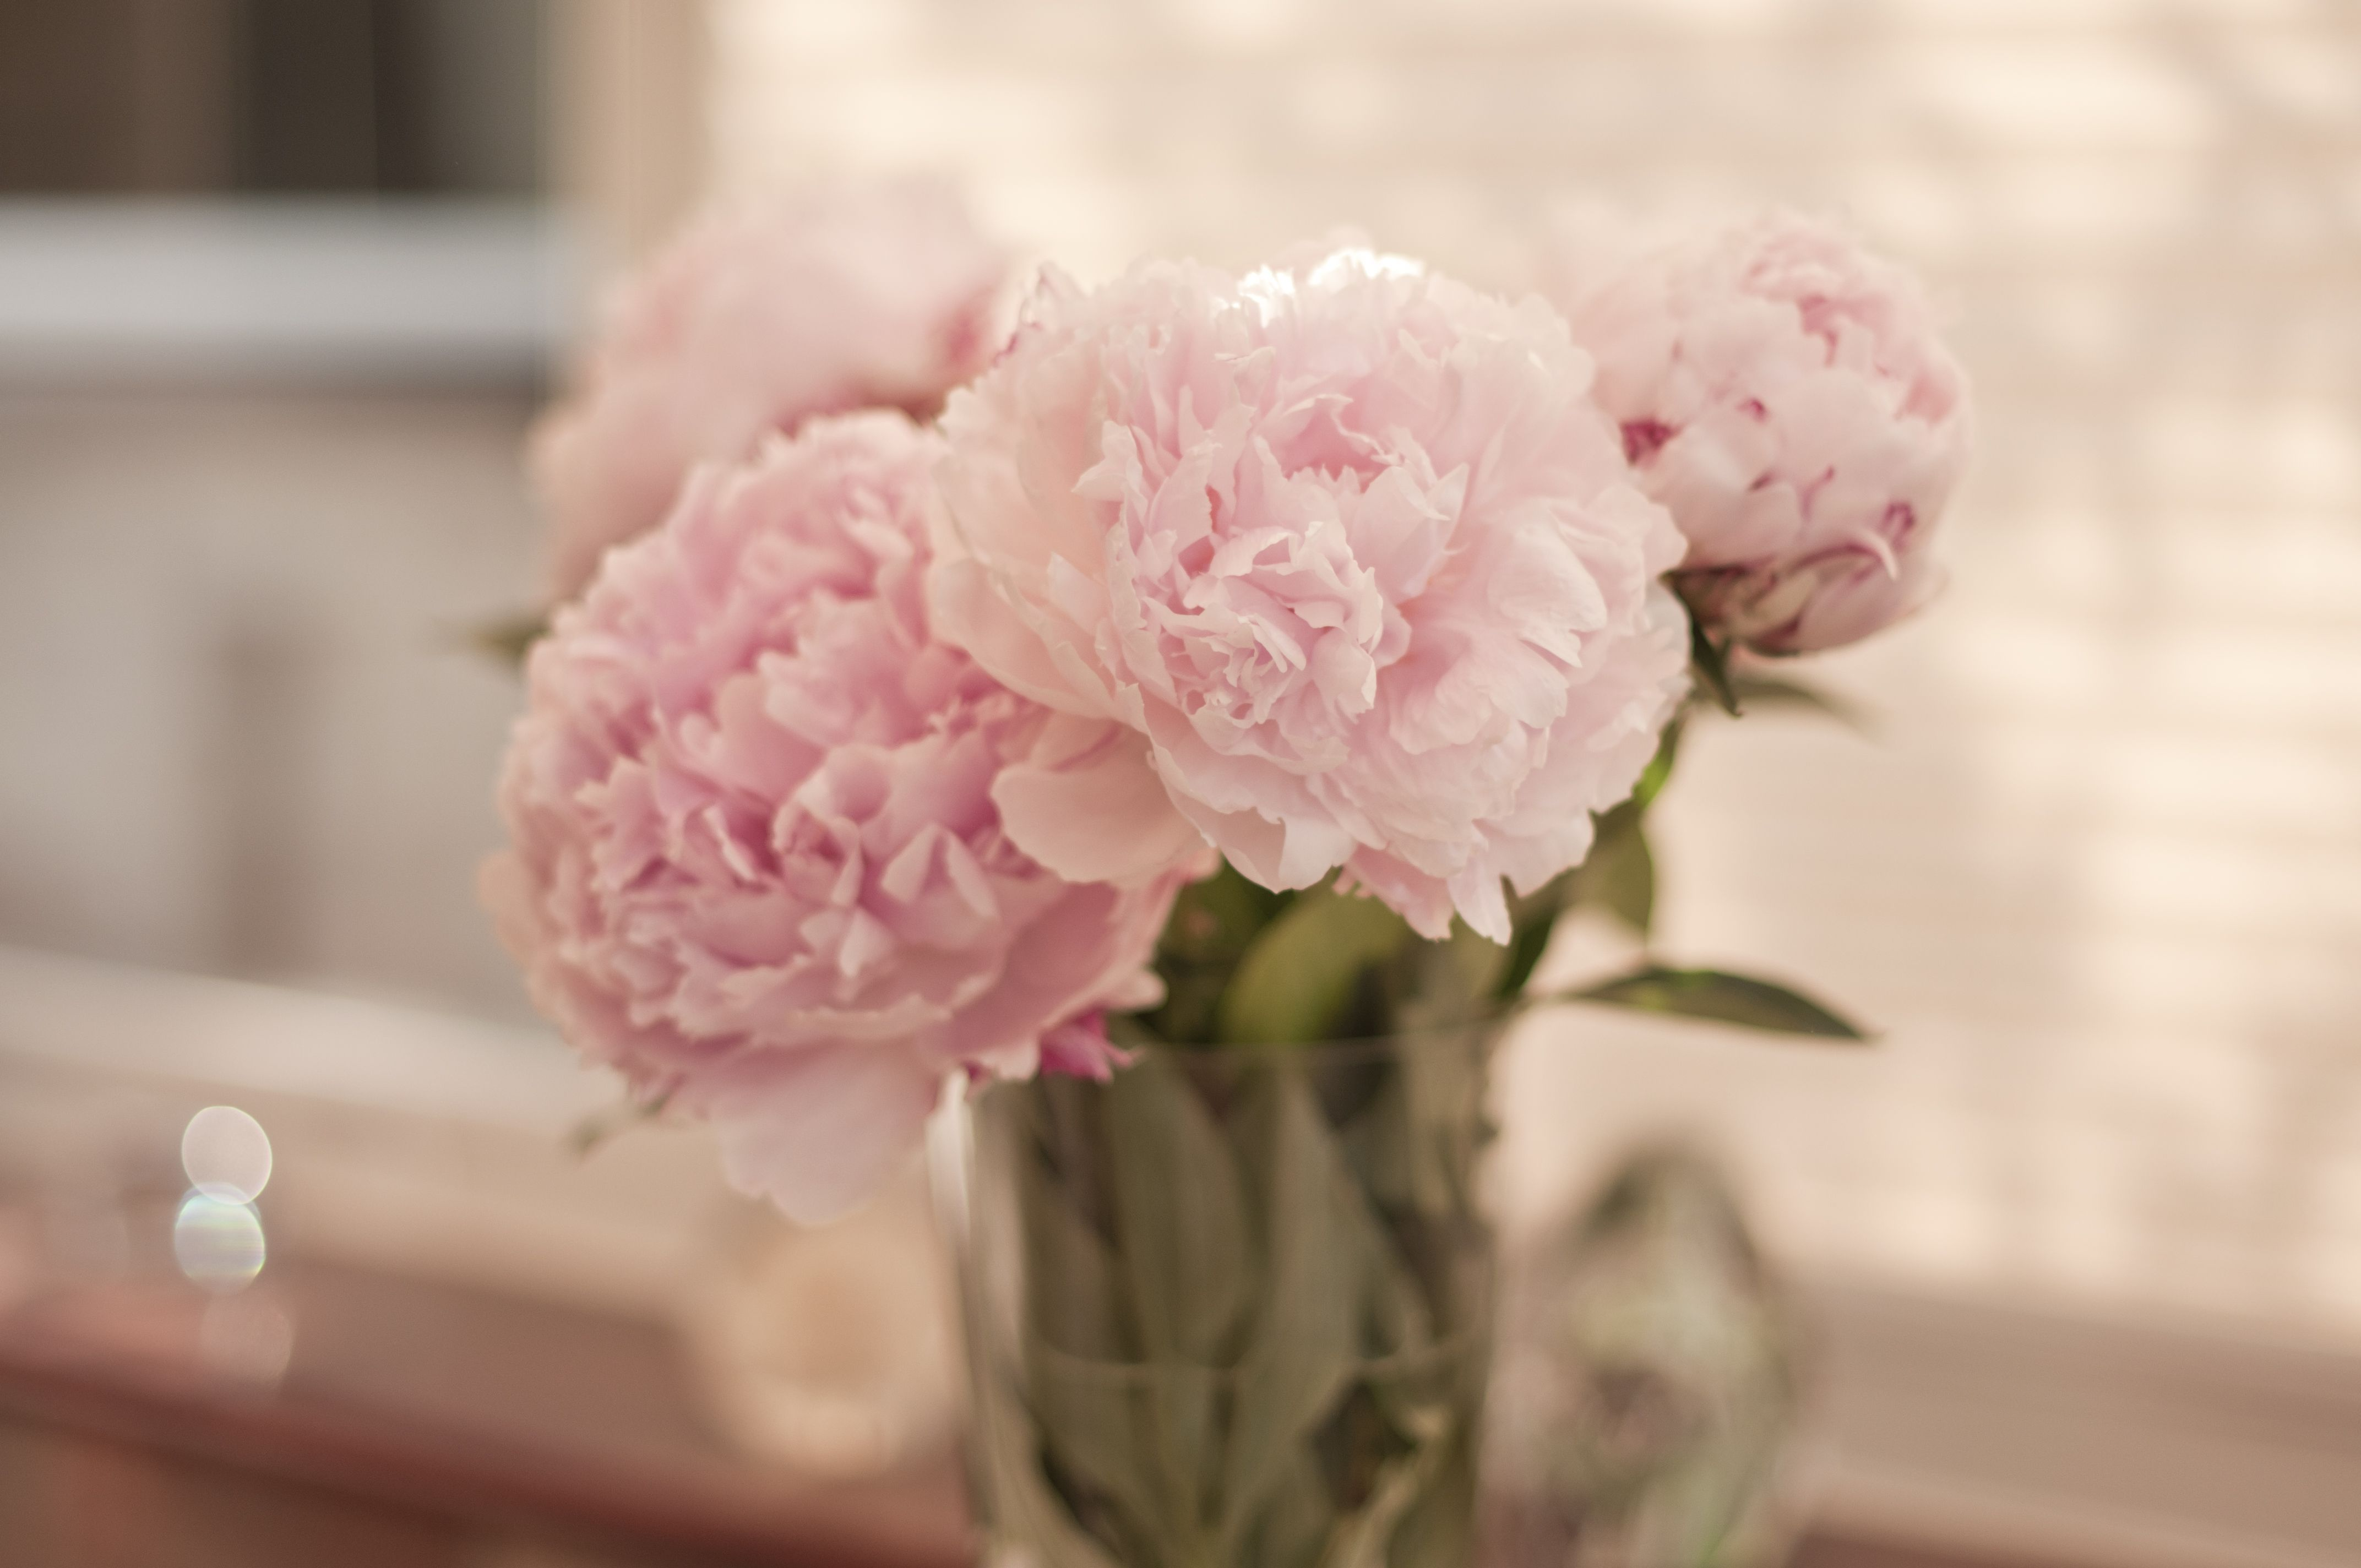 Gorgeous Peonies | M Y W E D D I N G S - kayleighpope.co.uk | Pinterest